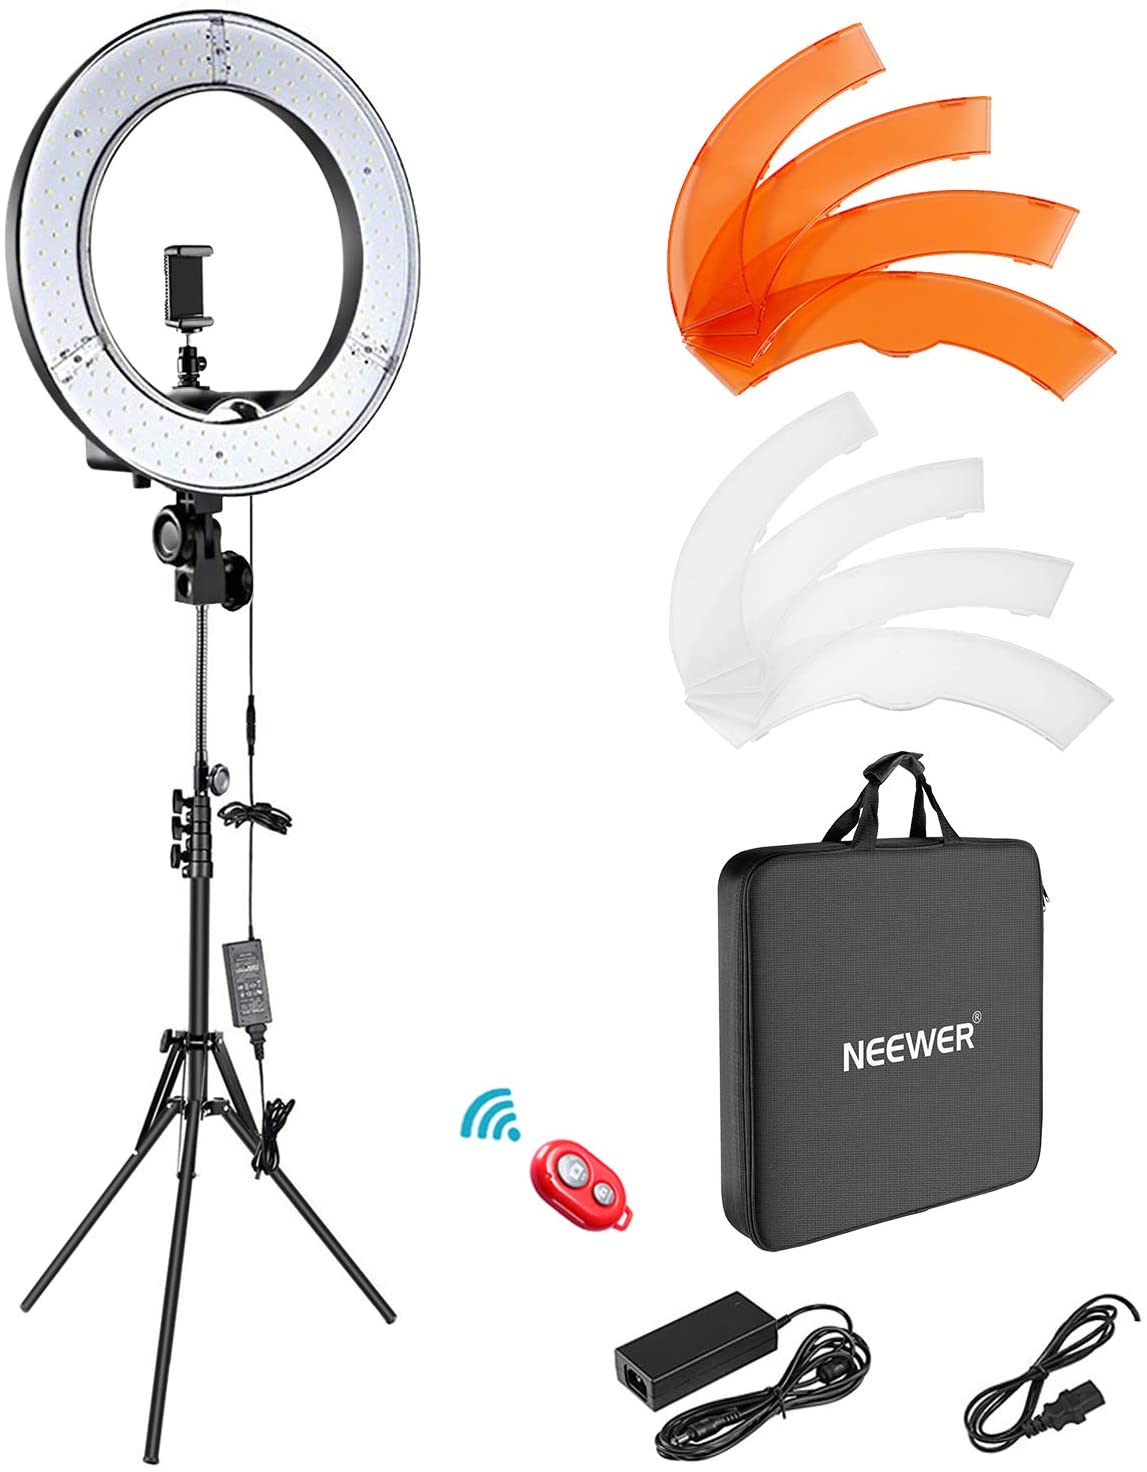 Neewer Ring Light Kit with Dimmable LED Ring Light, Light Stand and Carrying Bag for Camera